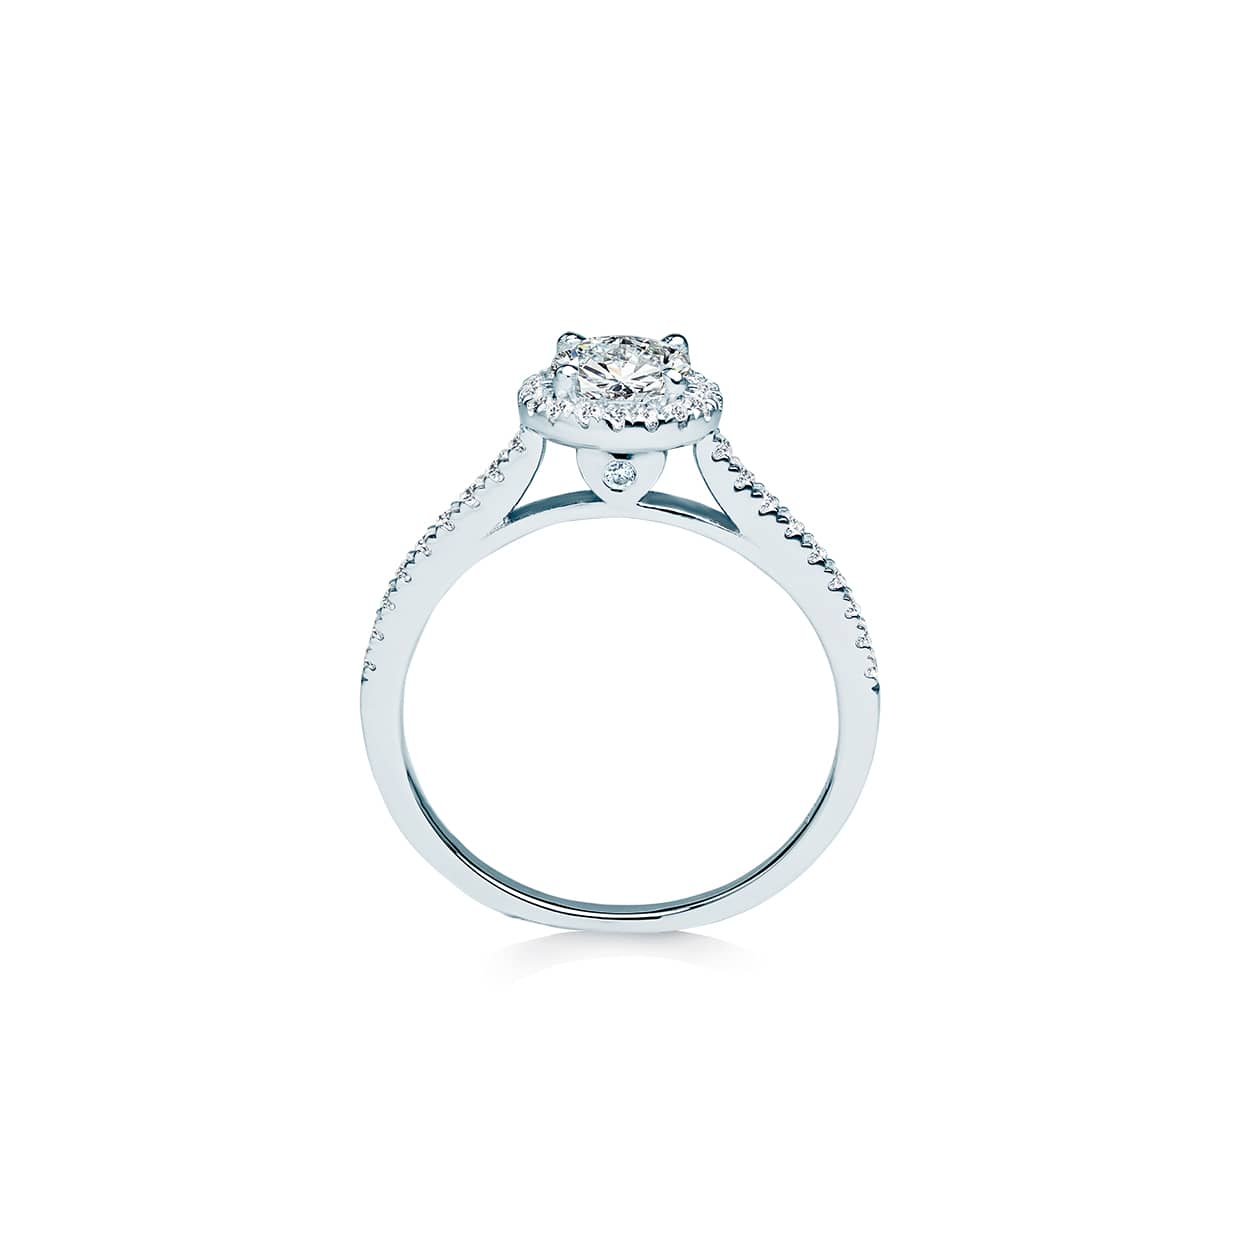 Diamond Halo Ring - Abelstedt